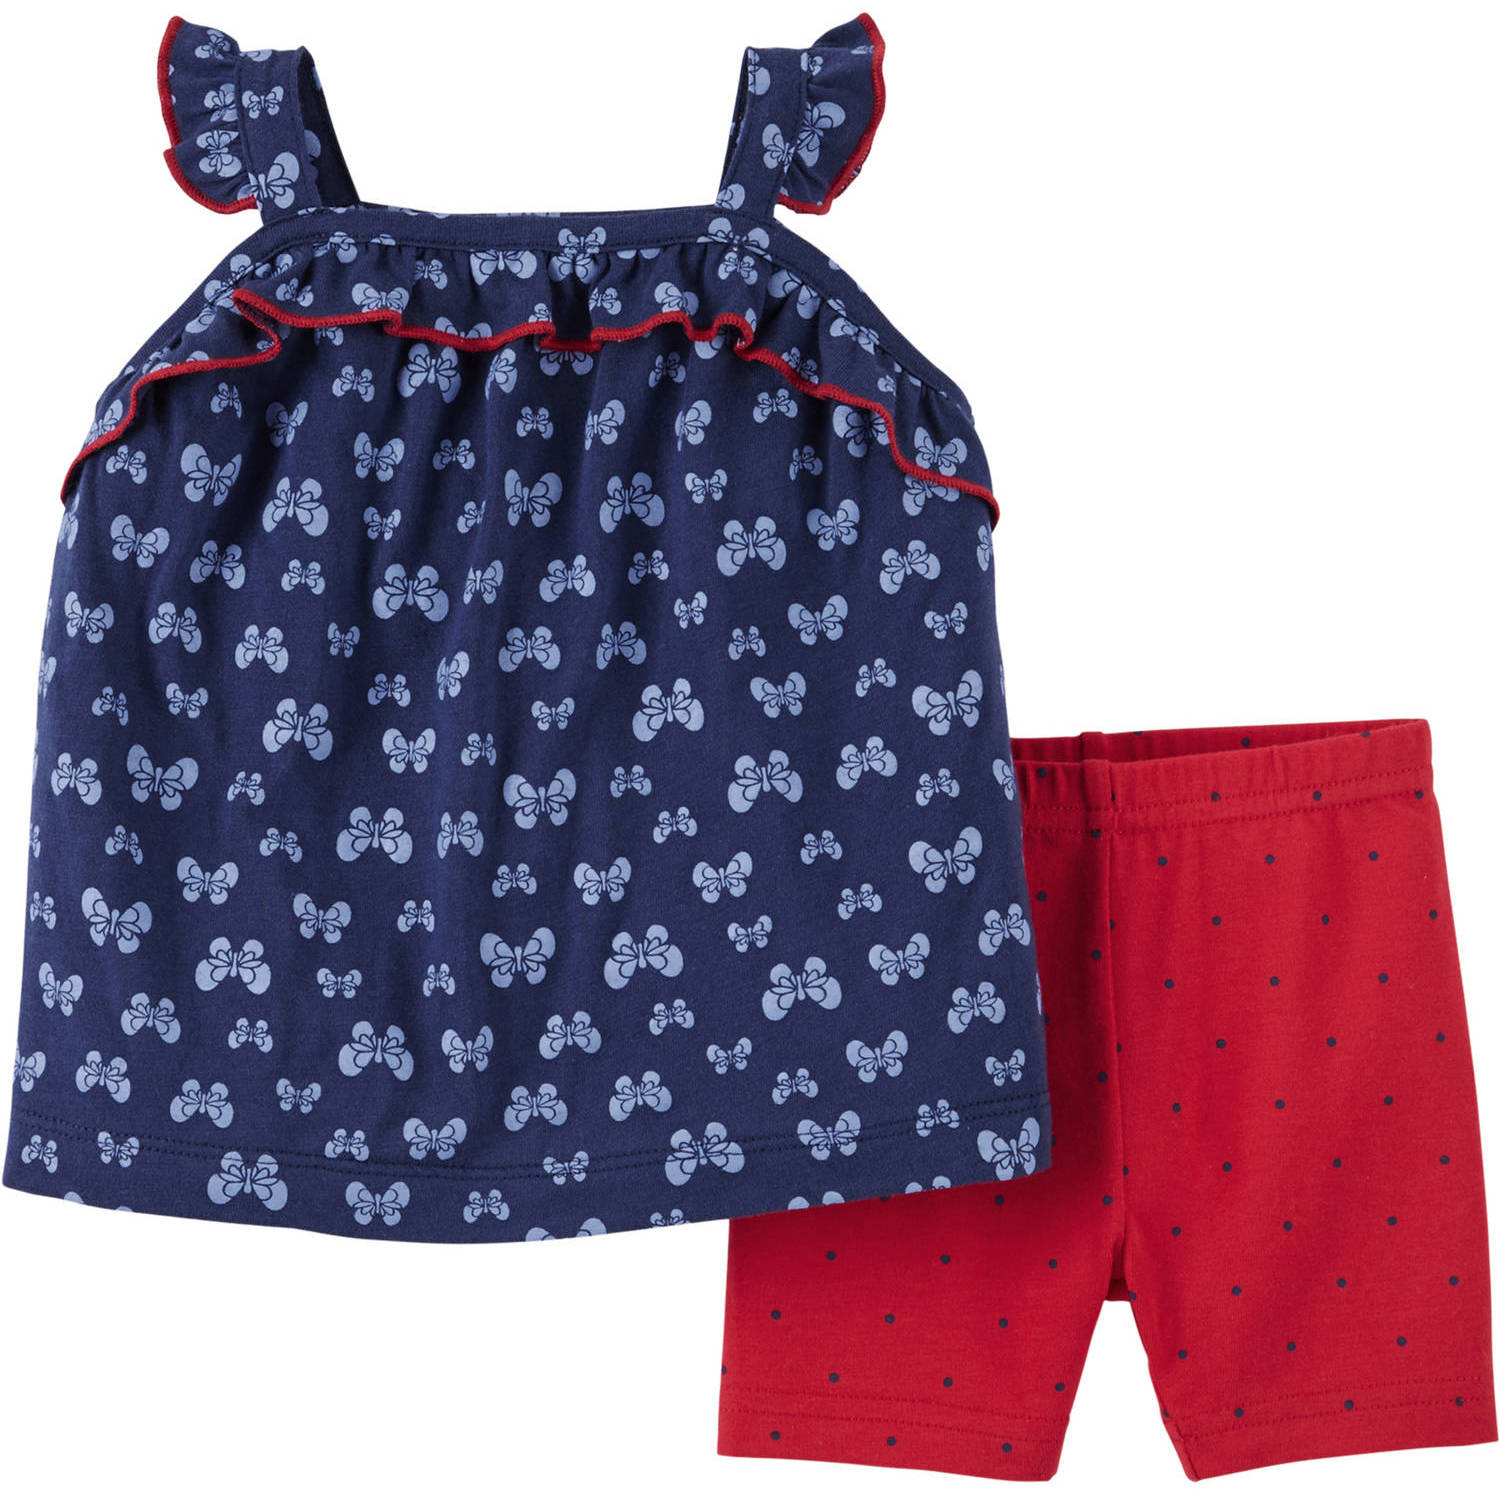 Child of Mine by Carter's Newborn Baby Girl Sleeveless Top and Capri Outfit Set, 2 Pieces